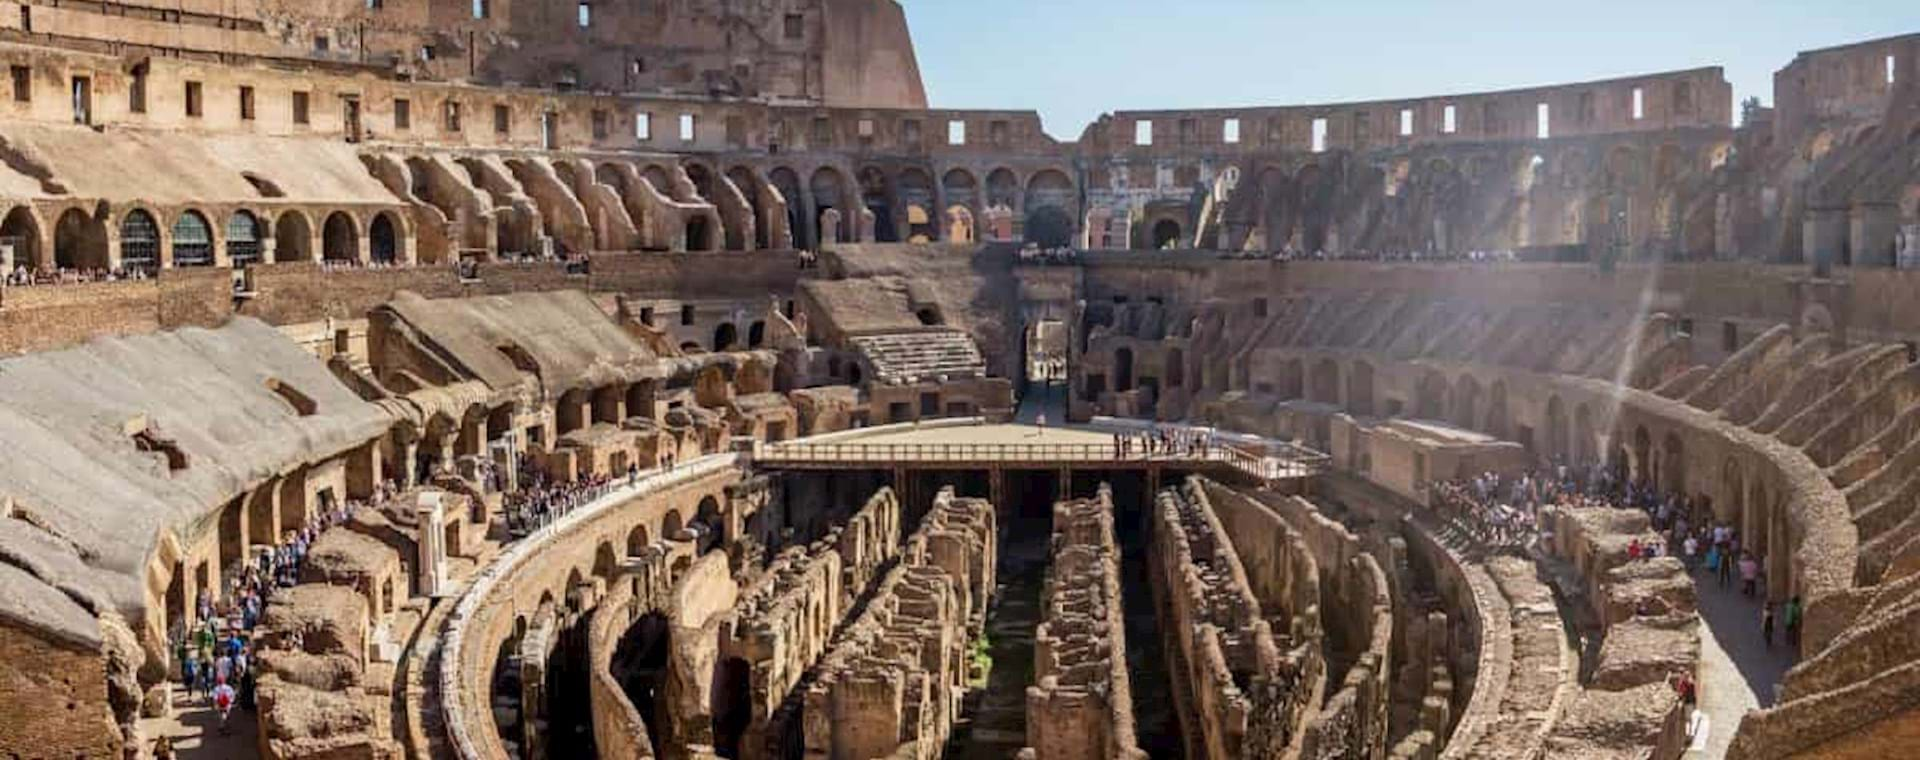 View of the inside of the Colosseum